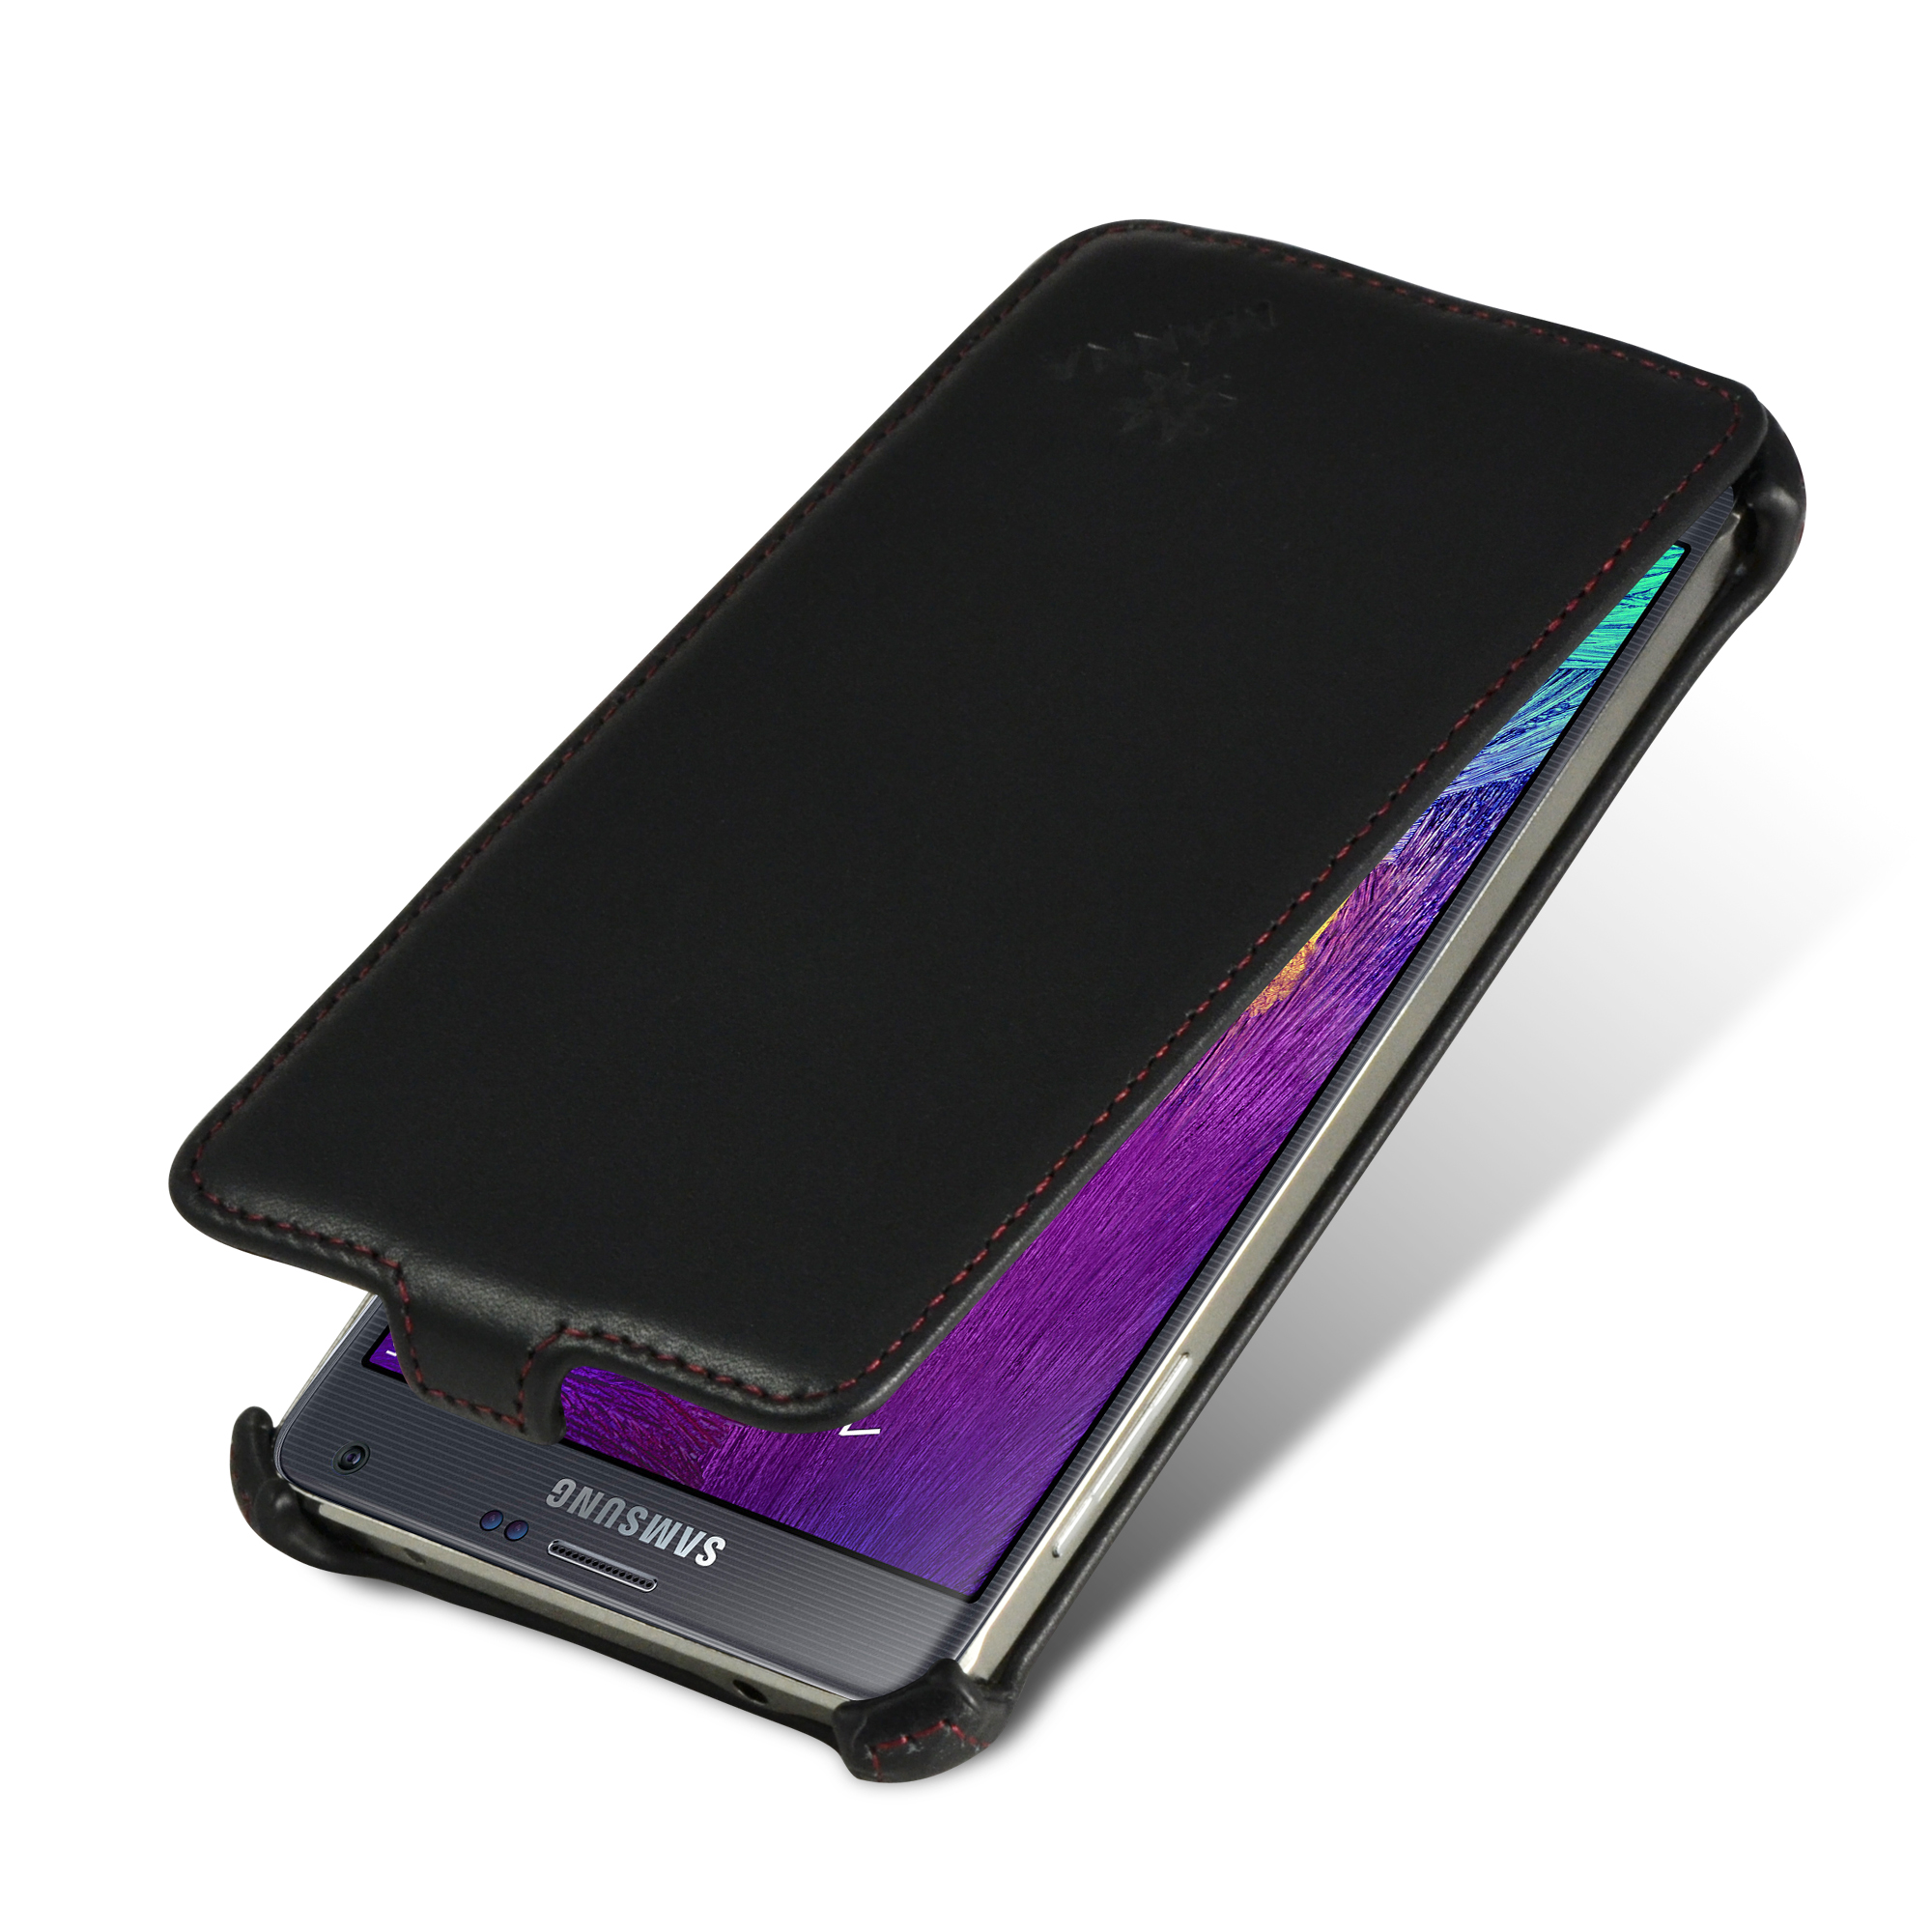 custodia samsung galaxy note 4